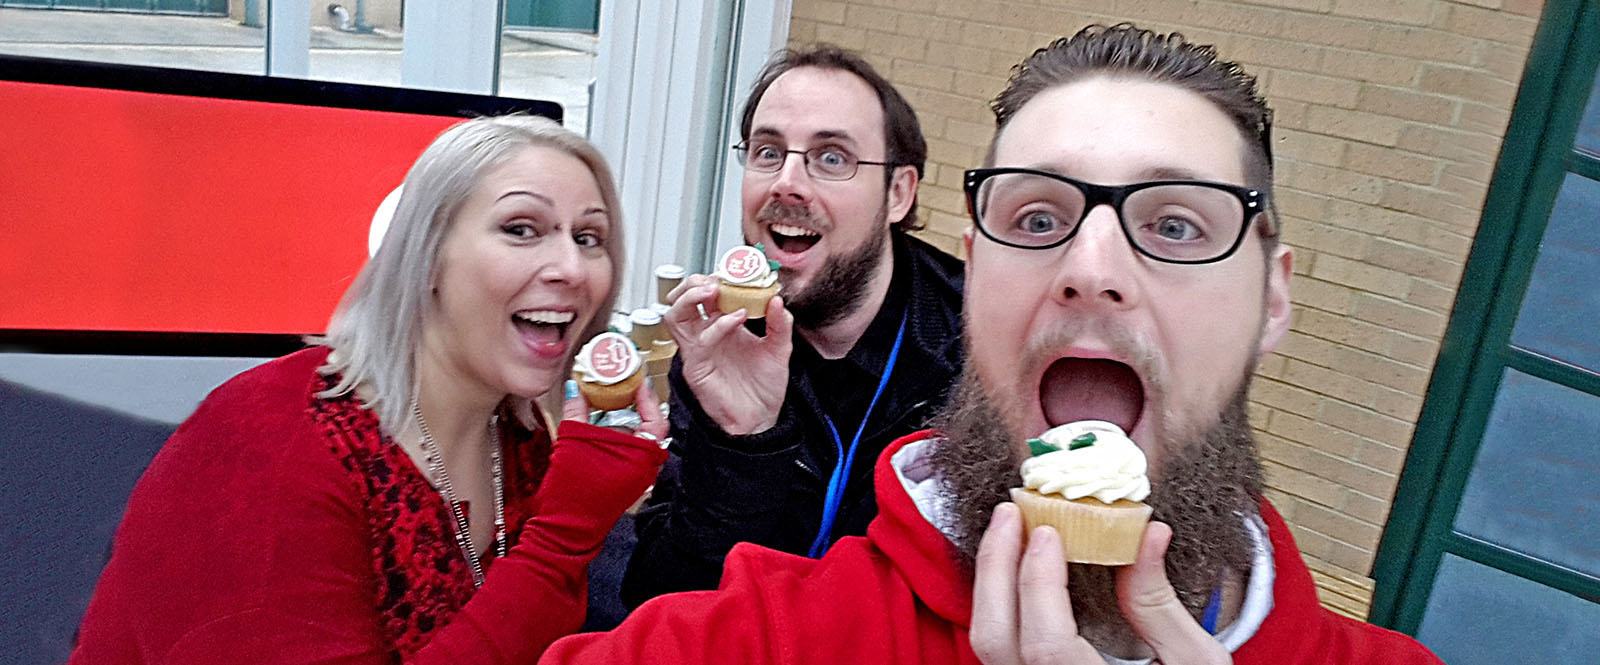 LTR: Julia, Barry and Darren eating Real Life Digital branded cup cakes.